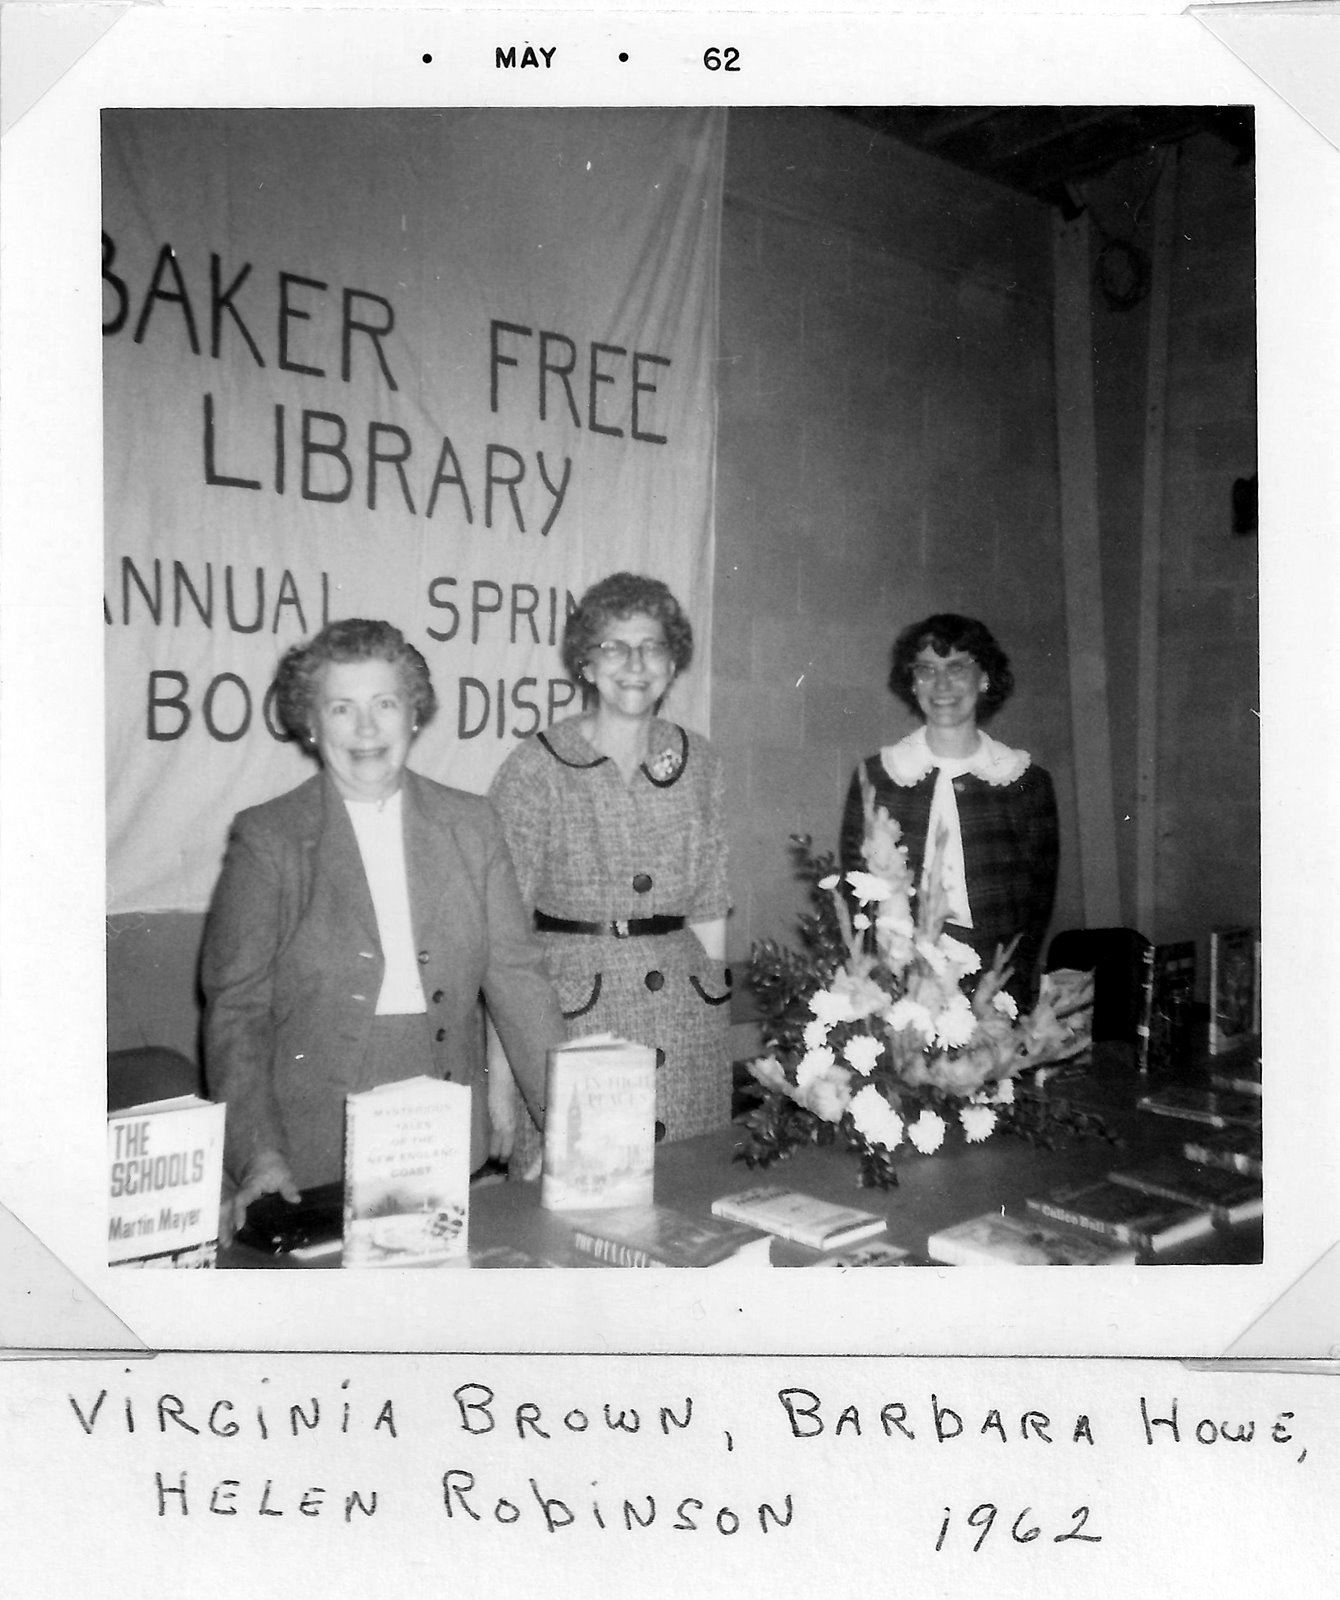 Pg 47  Baker Free Library Spring Event in 1962